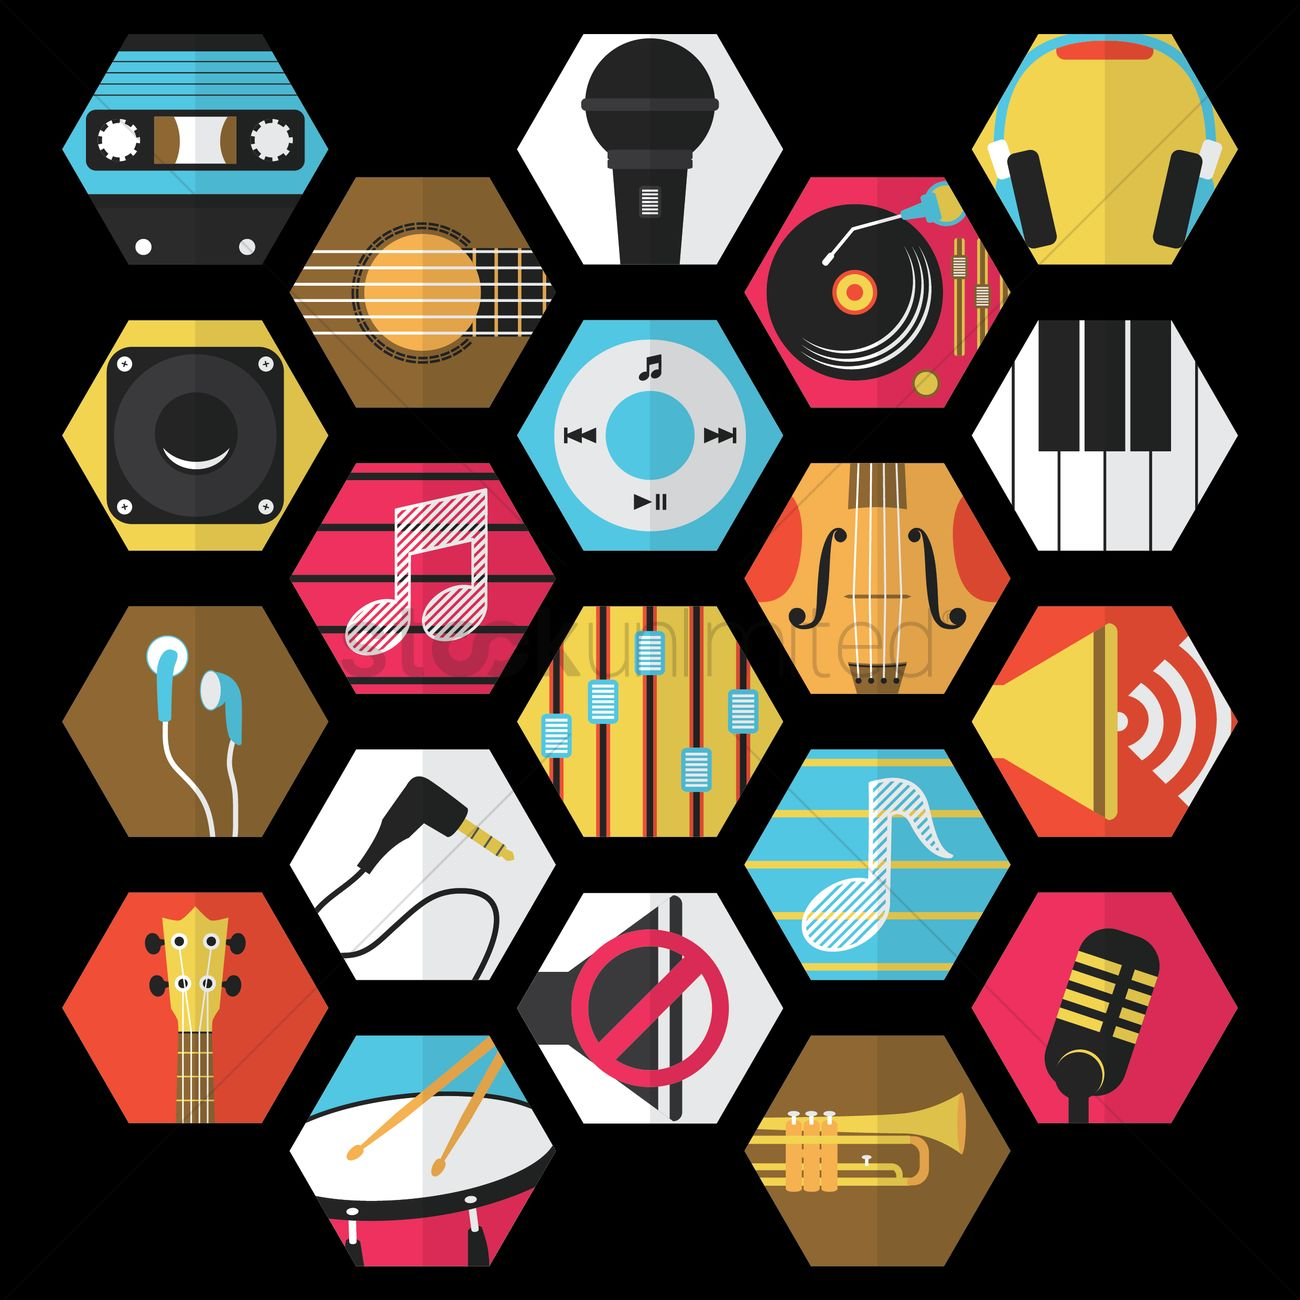 Music collection Vector Image - 1471790 | StockUnlimited